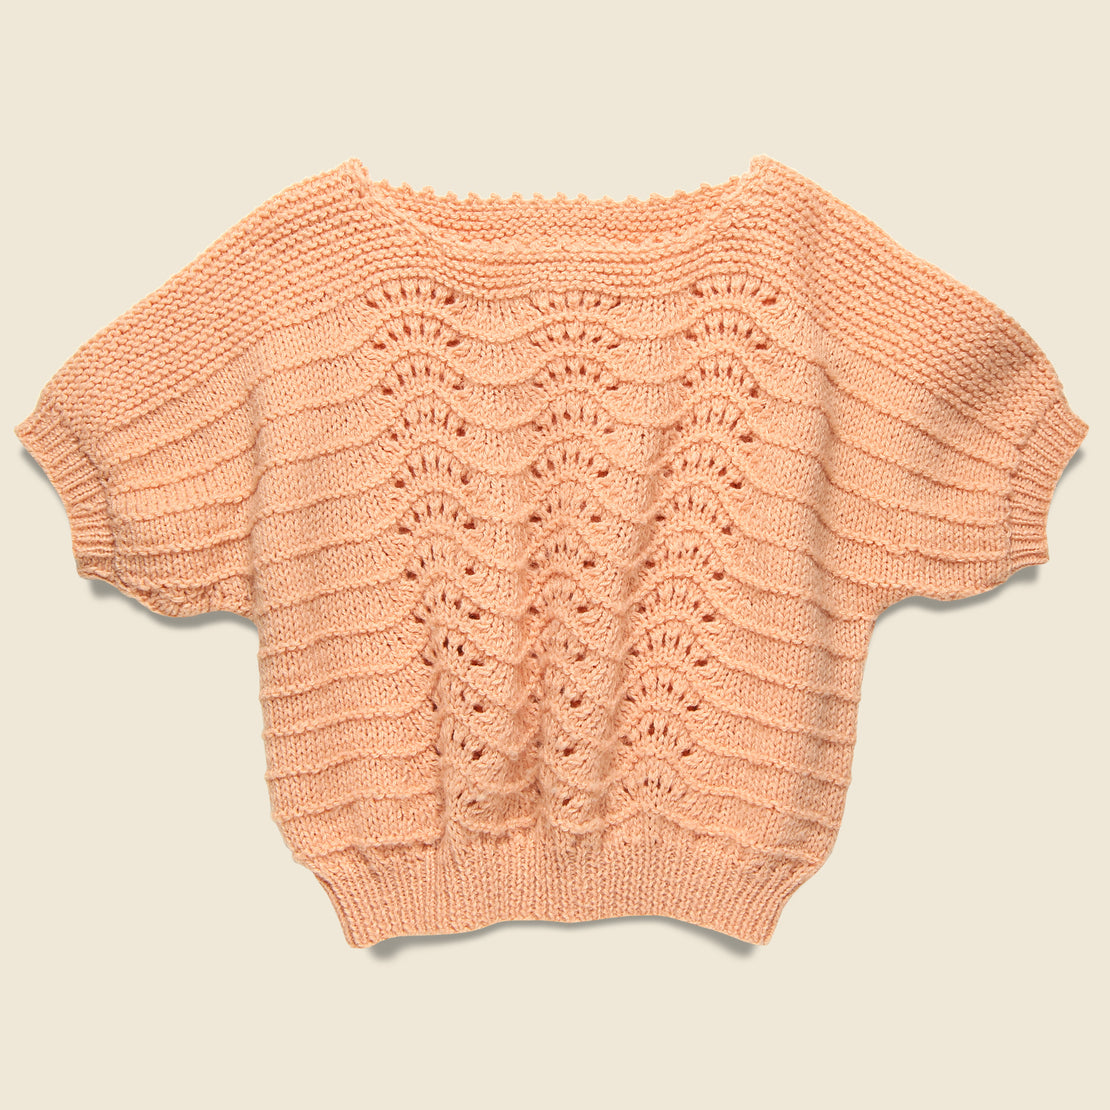 Vintage Crochet Knit Cropped Sweater - Peach